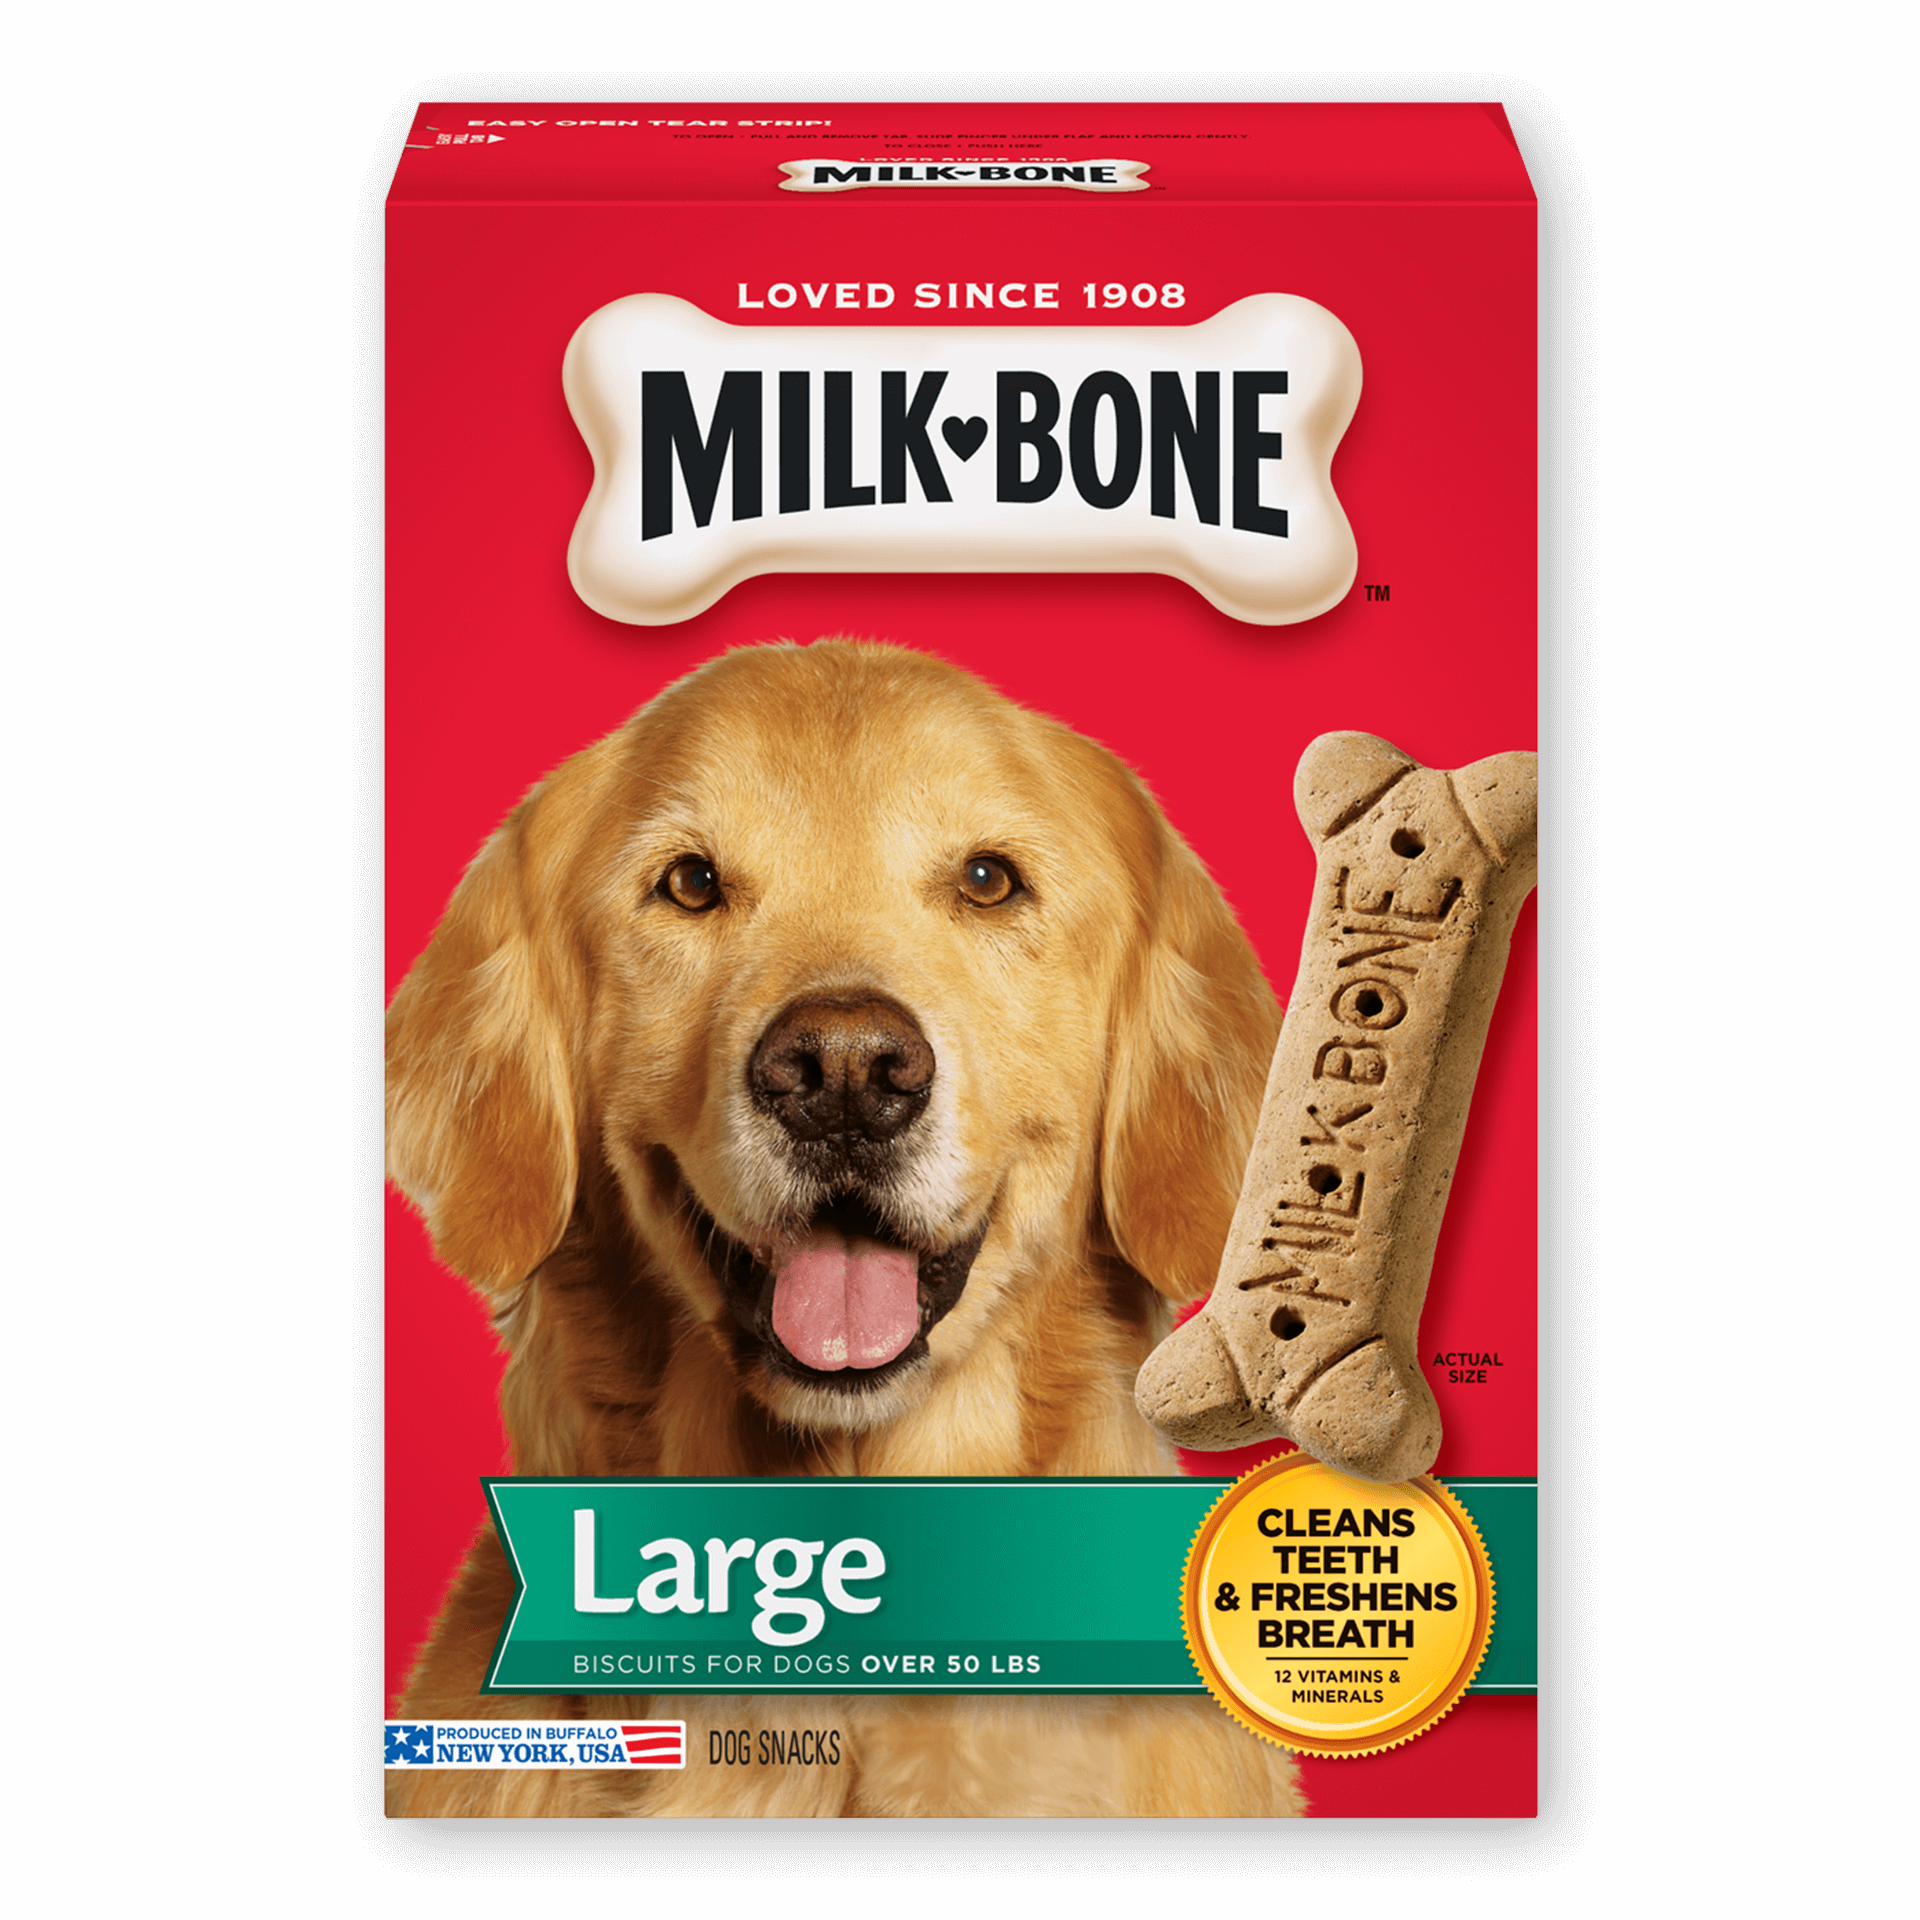 image black and white stock Original biscuits healthy dog. Bones transparent large